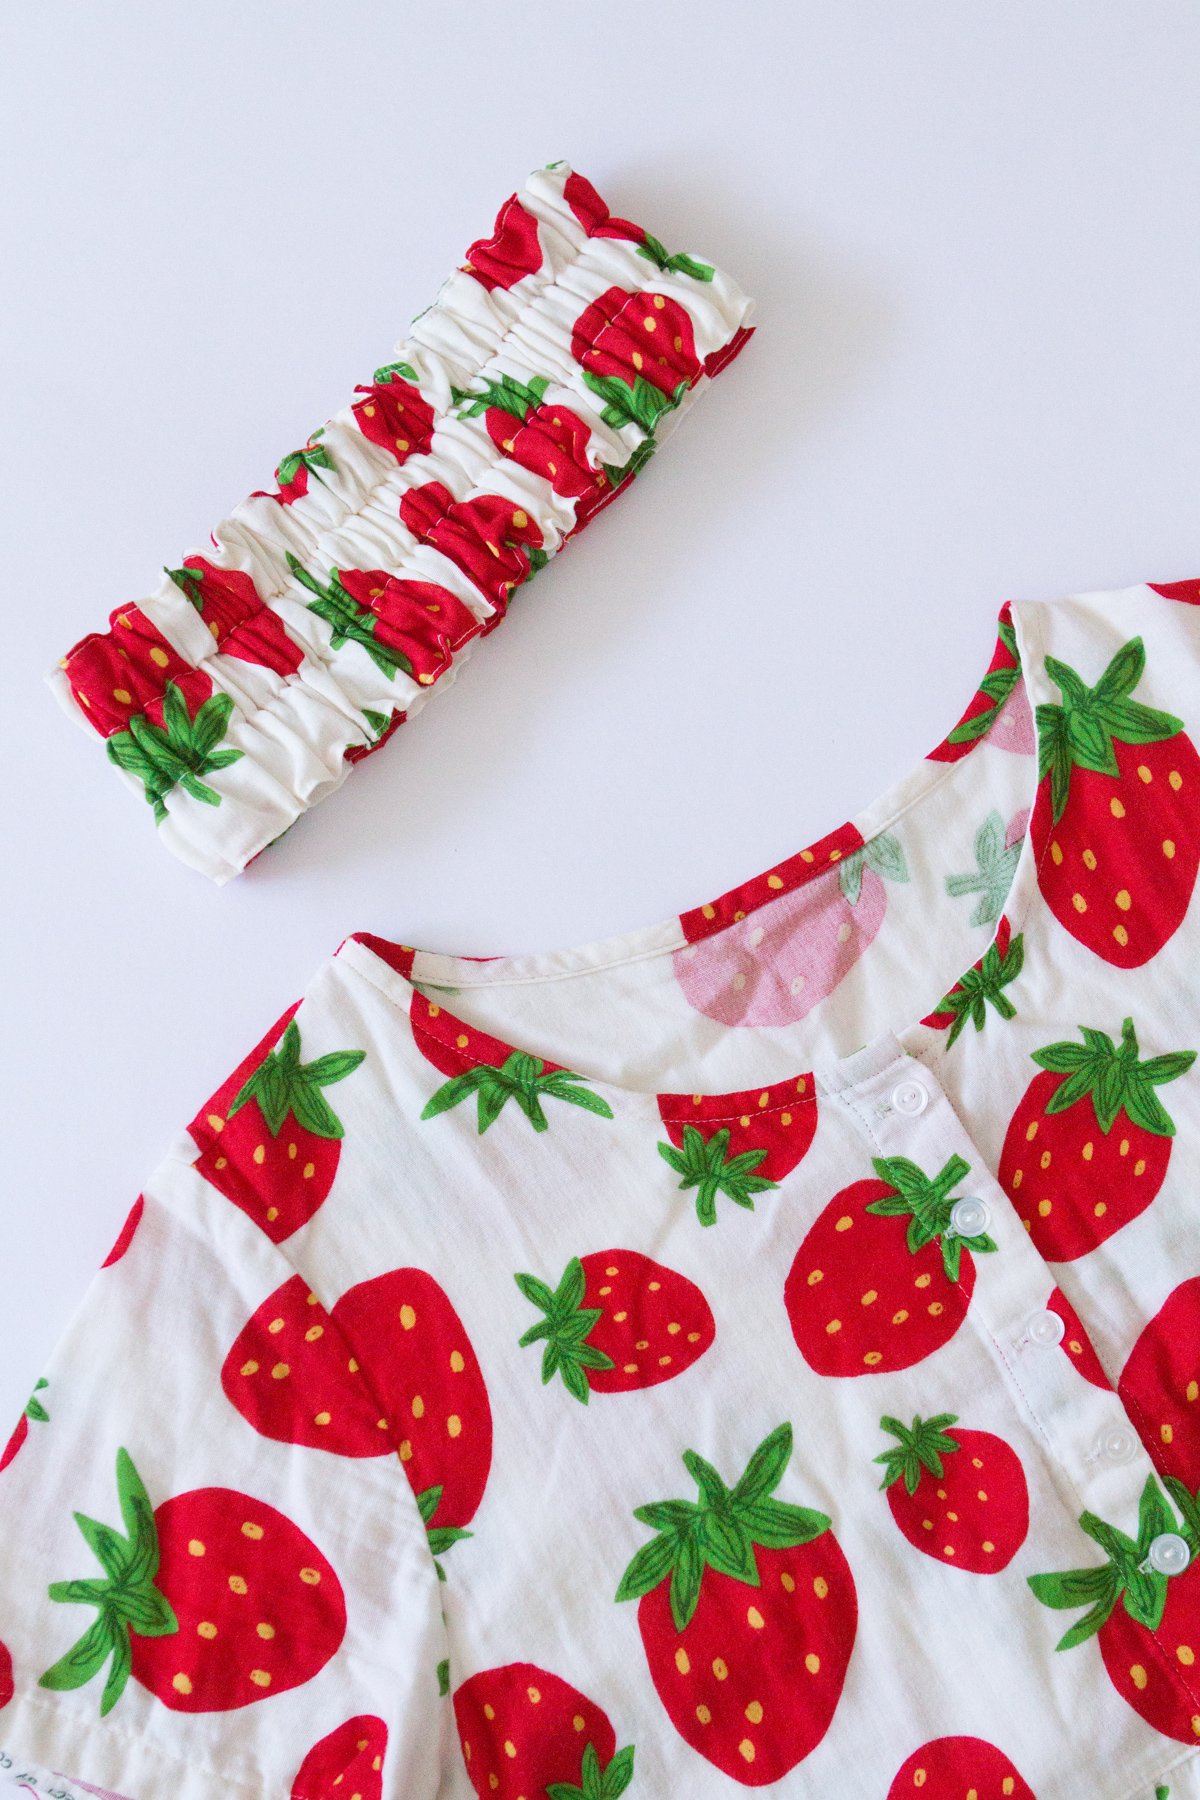 Strawberry print PJs I made before. I used the same pattern as this one.